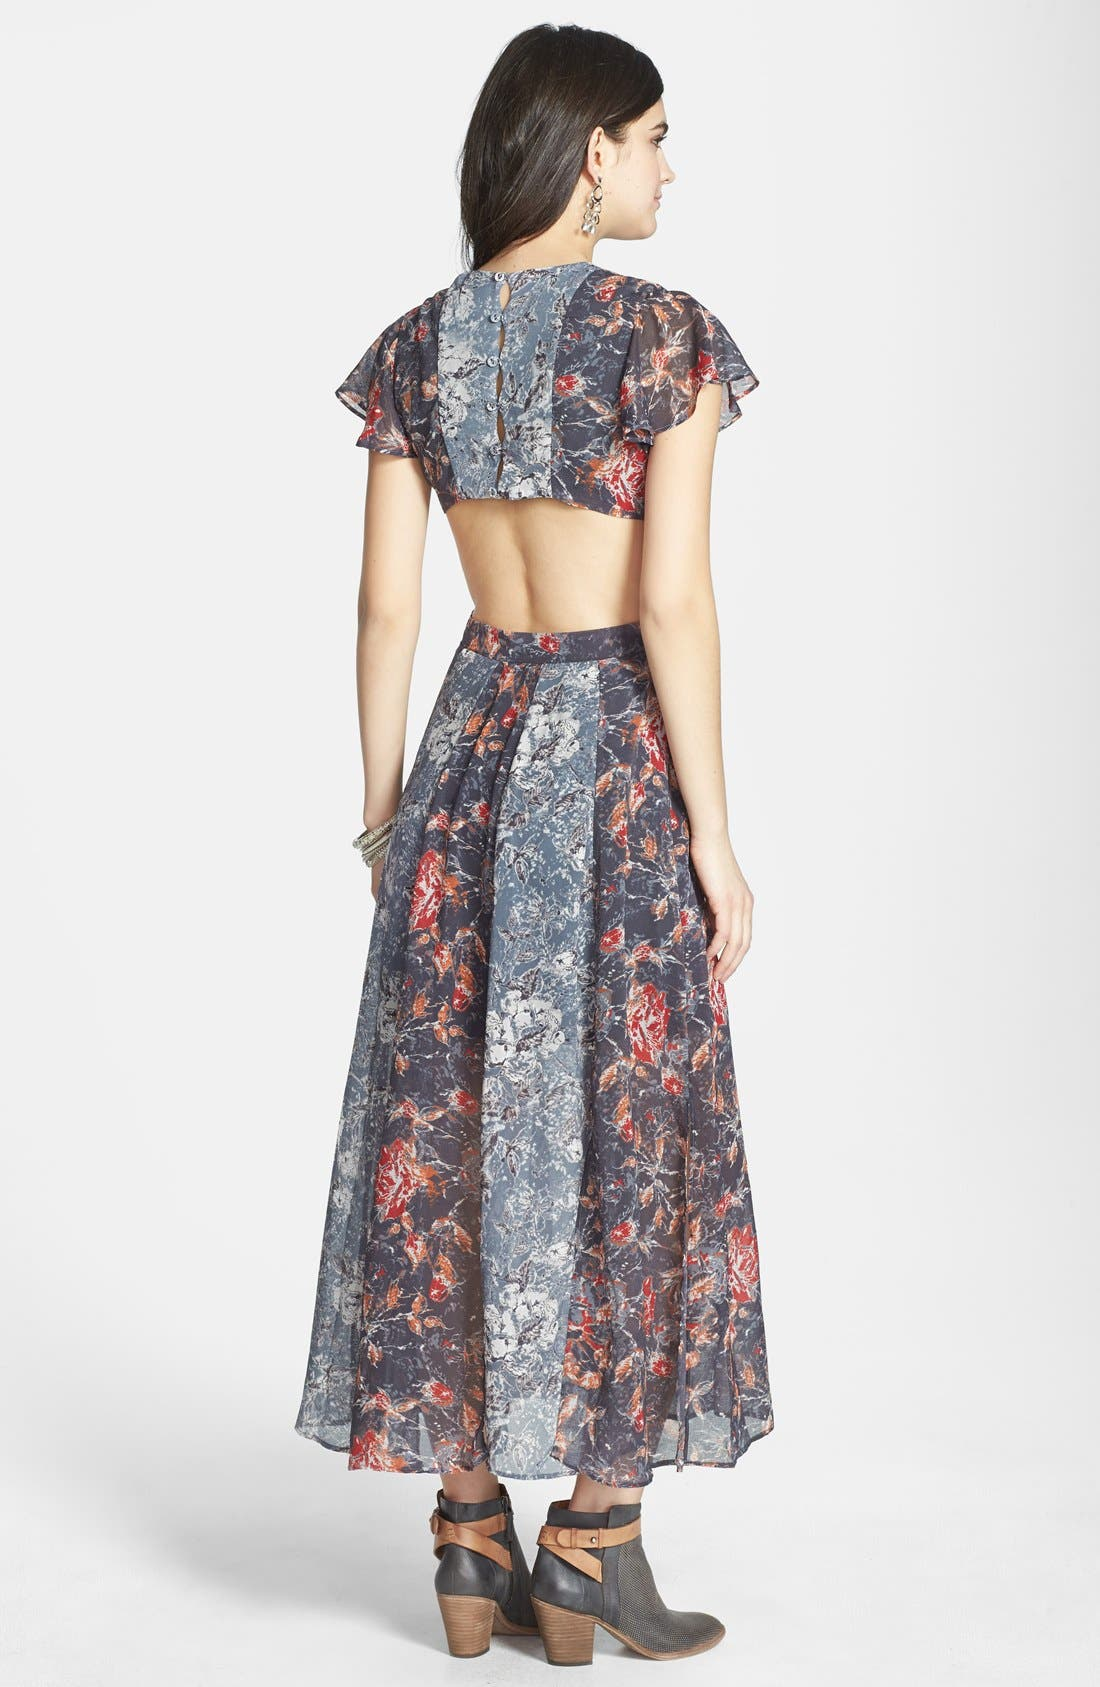 FREE PEOPLE,                             'Jasper' Mixed Print Twist Cutout Dress,                             Alternate thumbnail 3, color,                             400